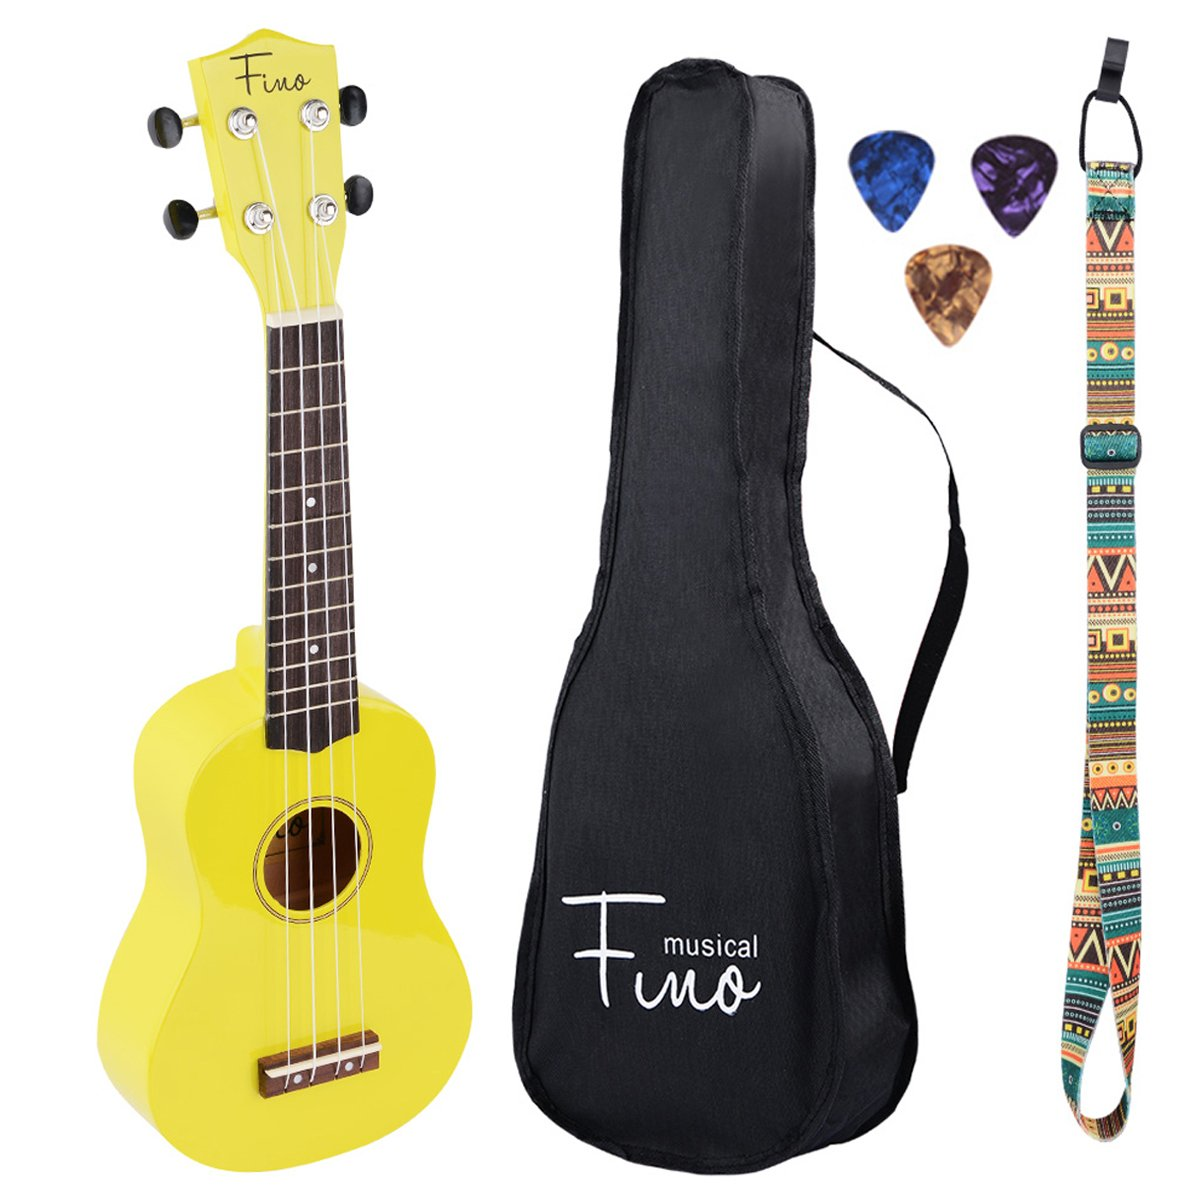 FINO Ukulele Kit for Beginners Rainbow Series,Soprano Ukulele Beginner Pack-21 inch w/Gig Bag,Strap and Picks,Small Guitar for Kids 5-8(Yellow)